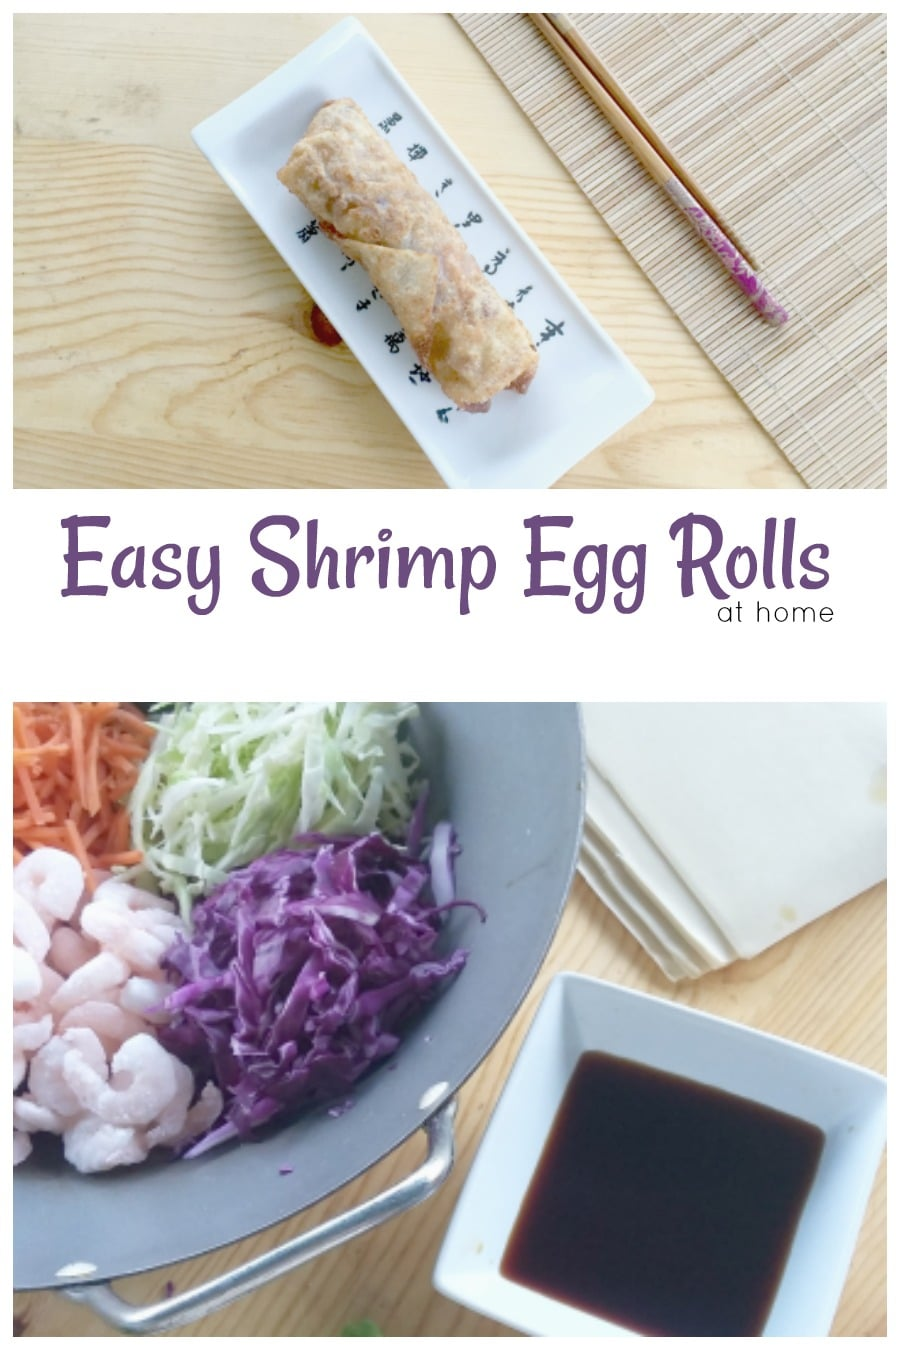 Easy Shrimp Egg Rolls